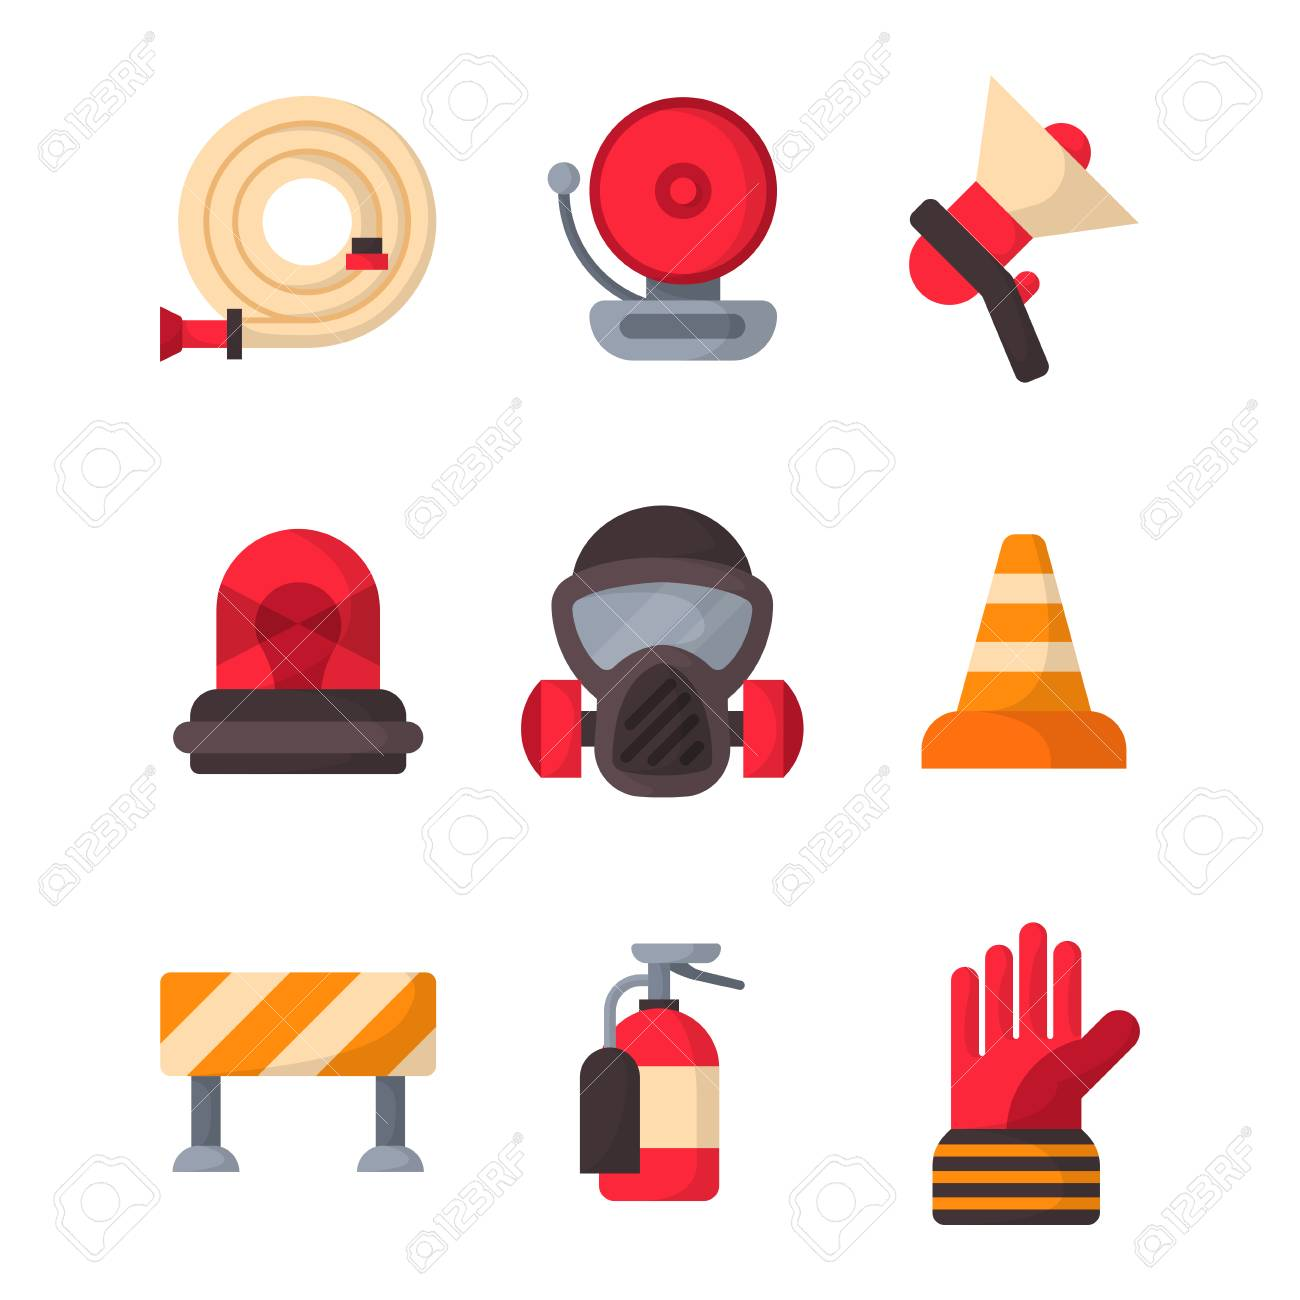 Firefighting symbols how to install a floor drain diagram arrows fire safety equipment emergency icons firefighter symbols safe 78966259 fire safety equipment emergency icons firefighter symbols buycottarizona Choice Image